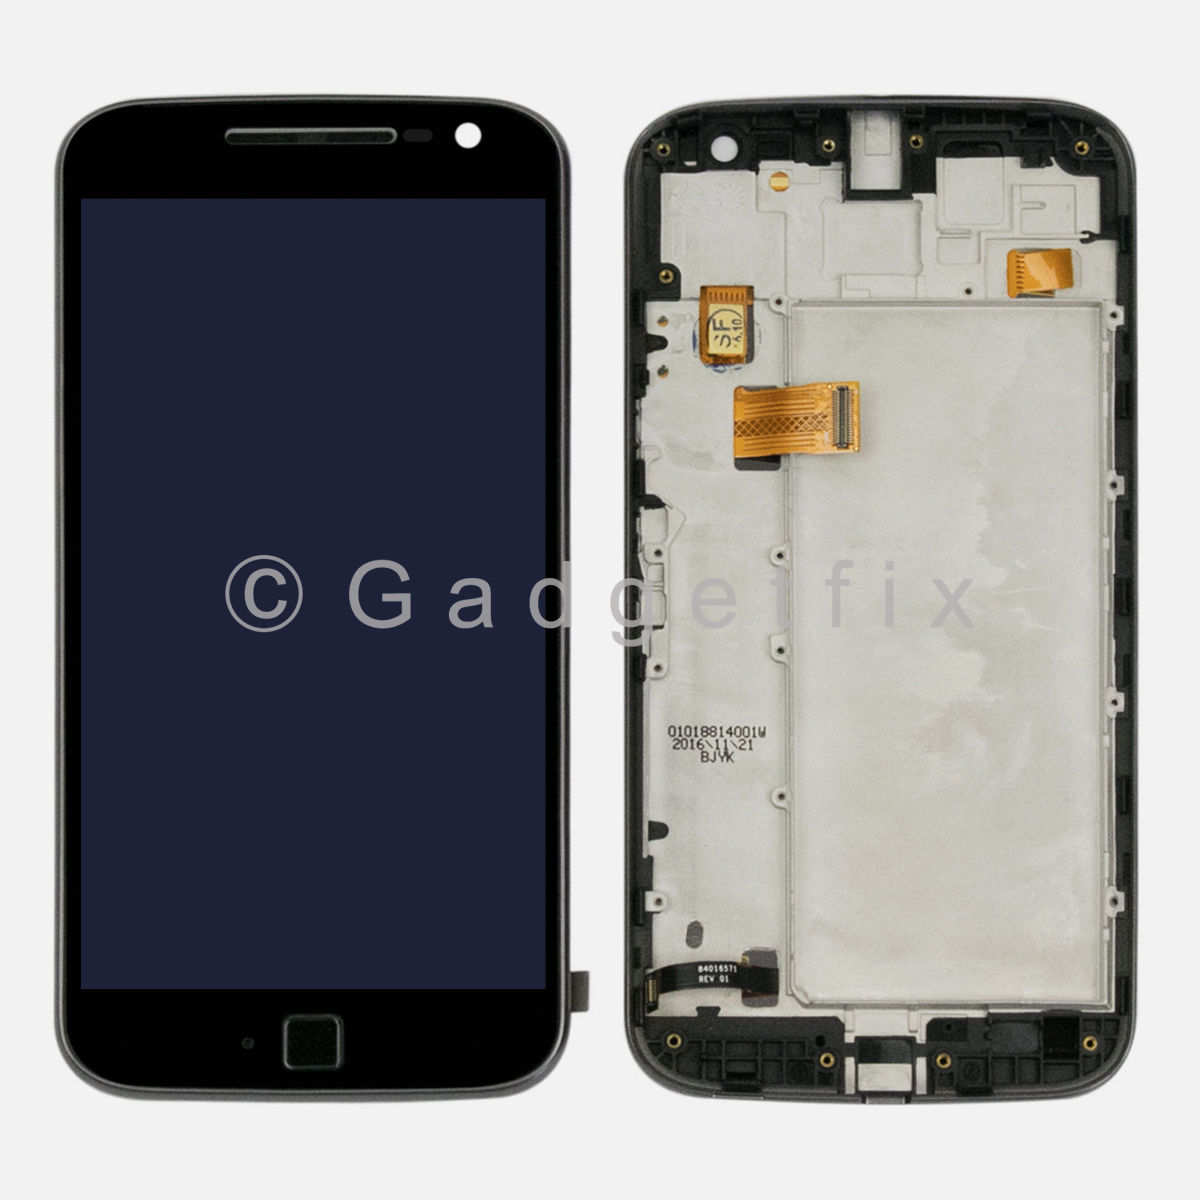 Motorola Moto G4 Plus XT1644 XT1643 XT1642 XT1641 LCD Touch Screen Digitizer + Frame